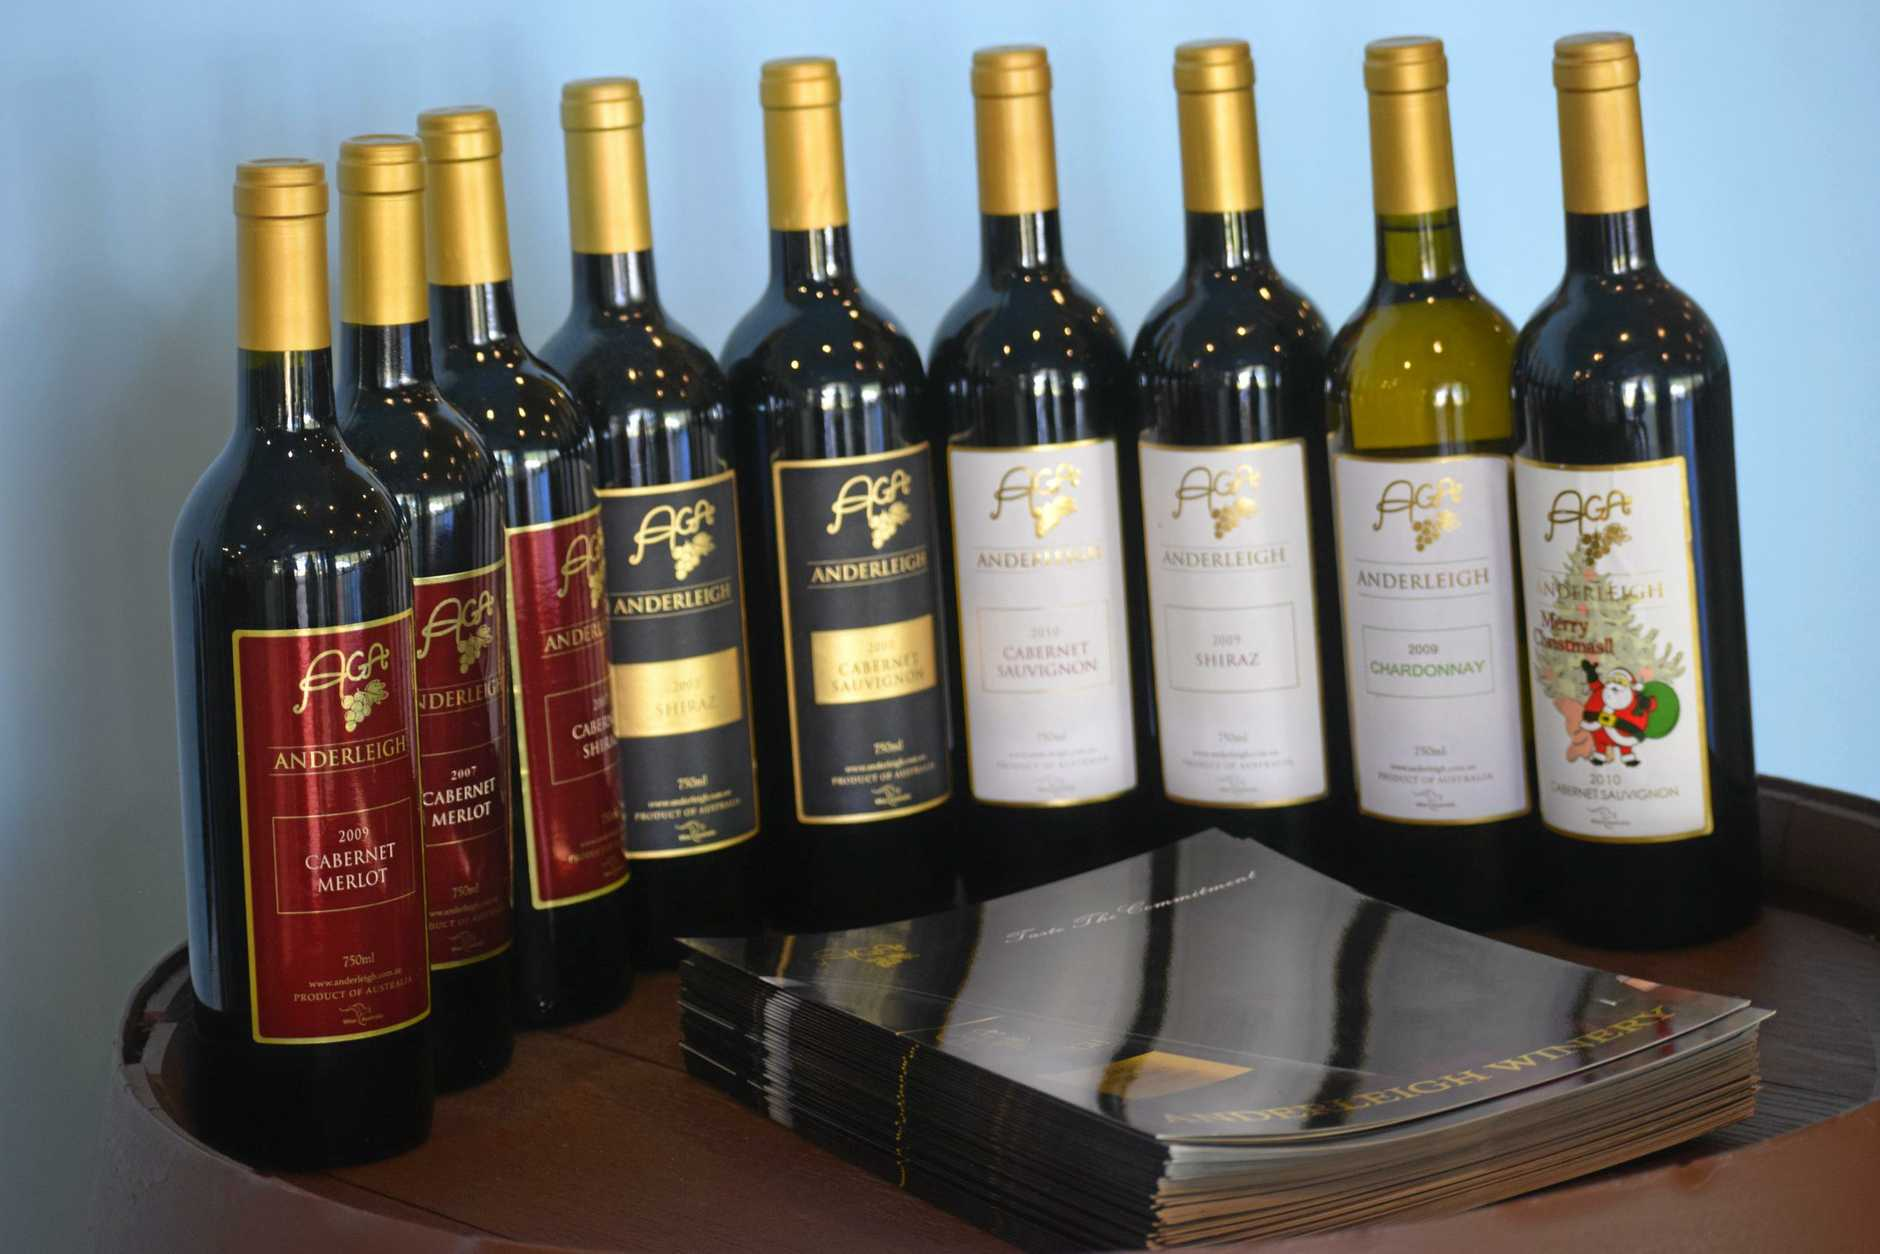 YOUR CHOICE: Customers can purchase any of these wines from Anderleigh Winery.